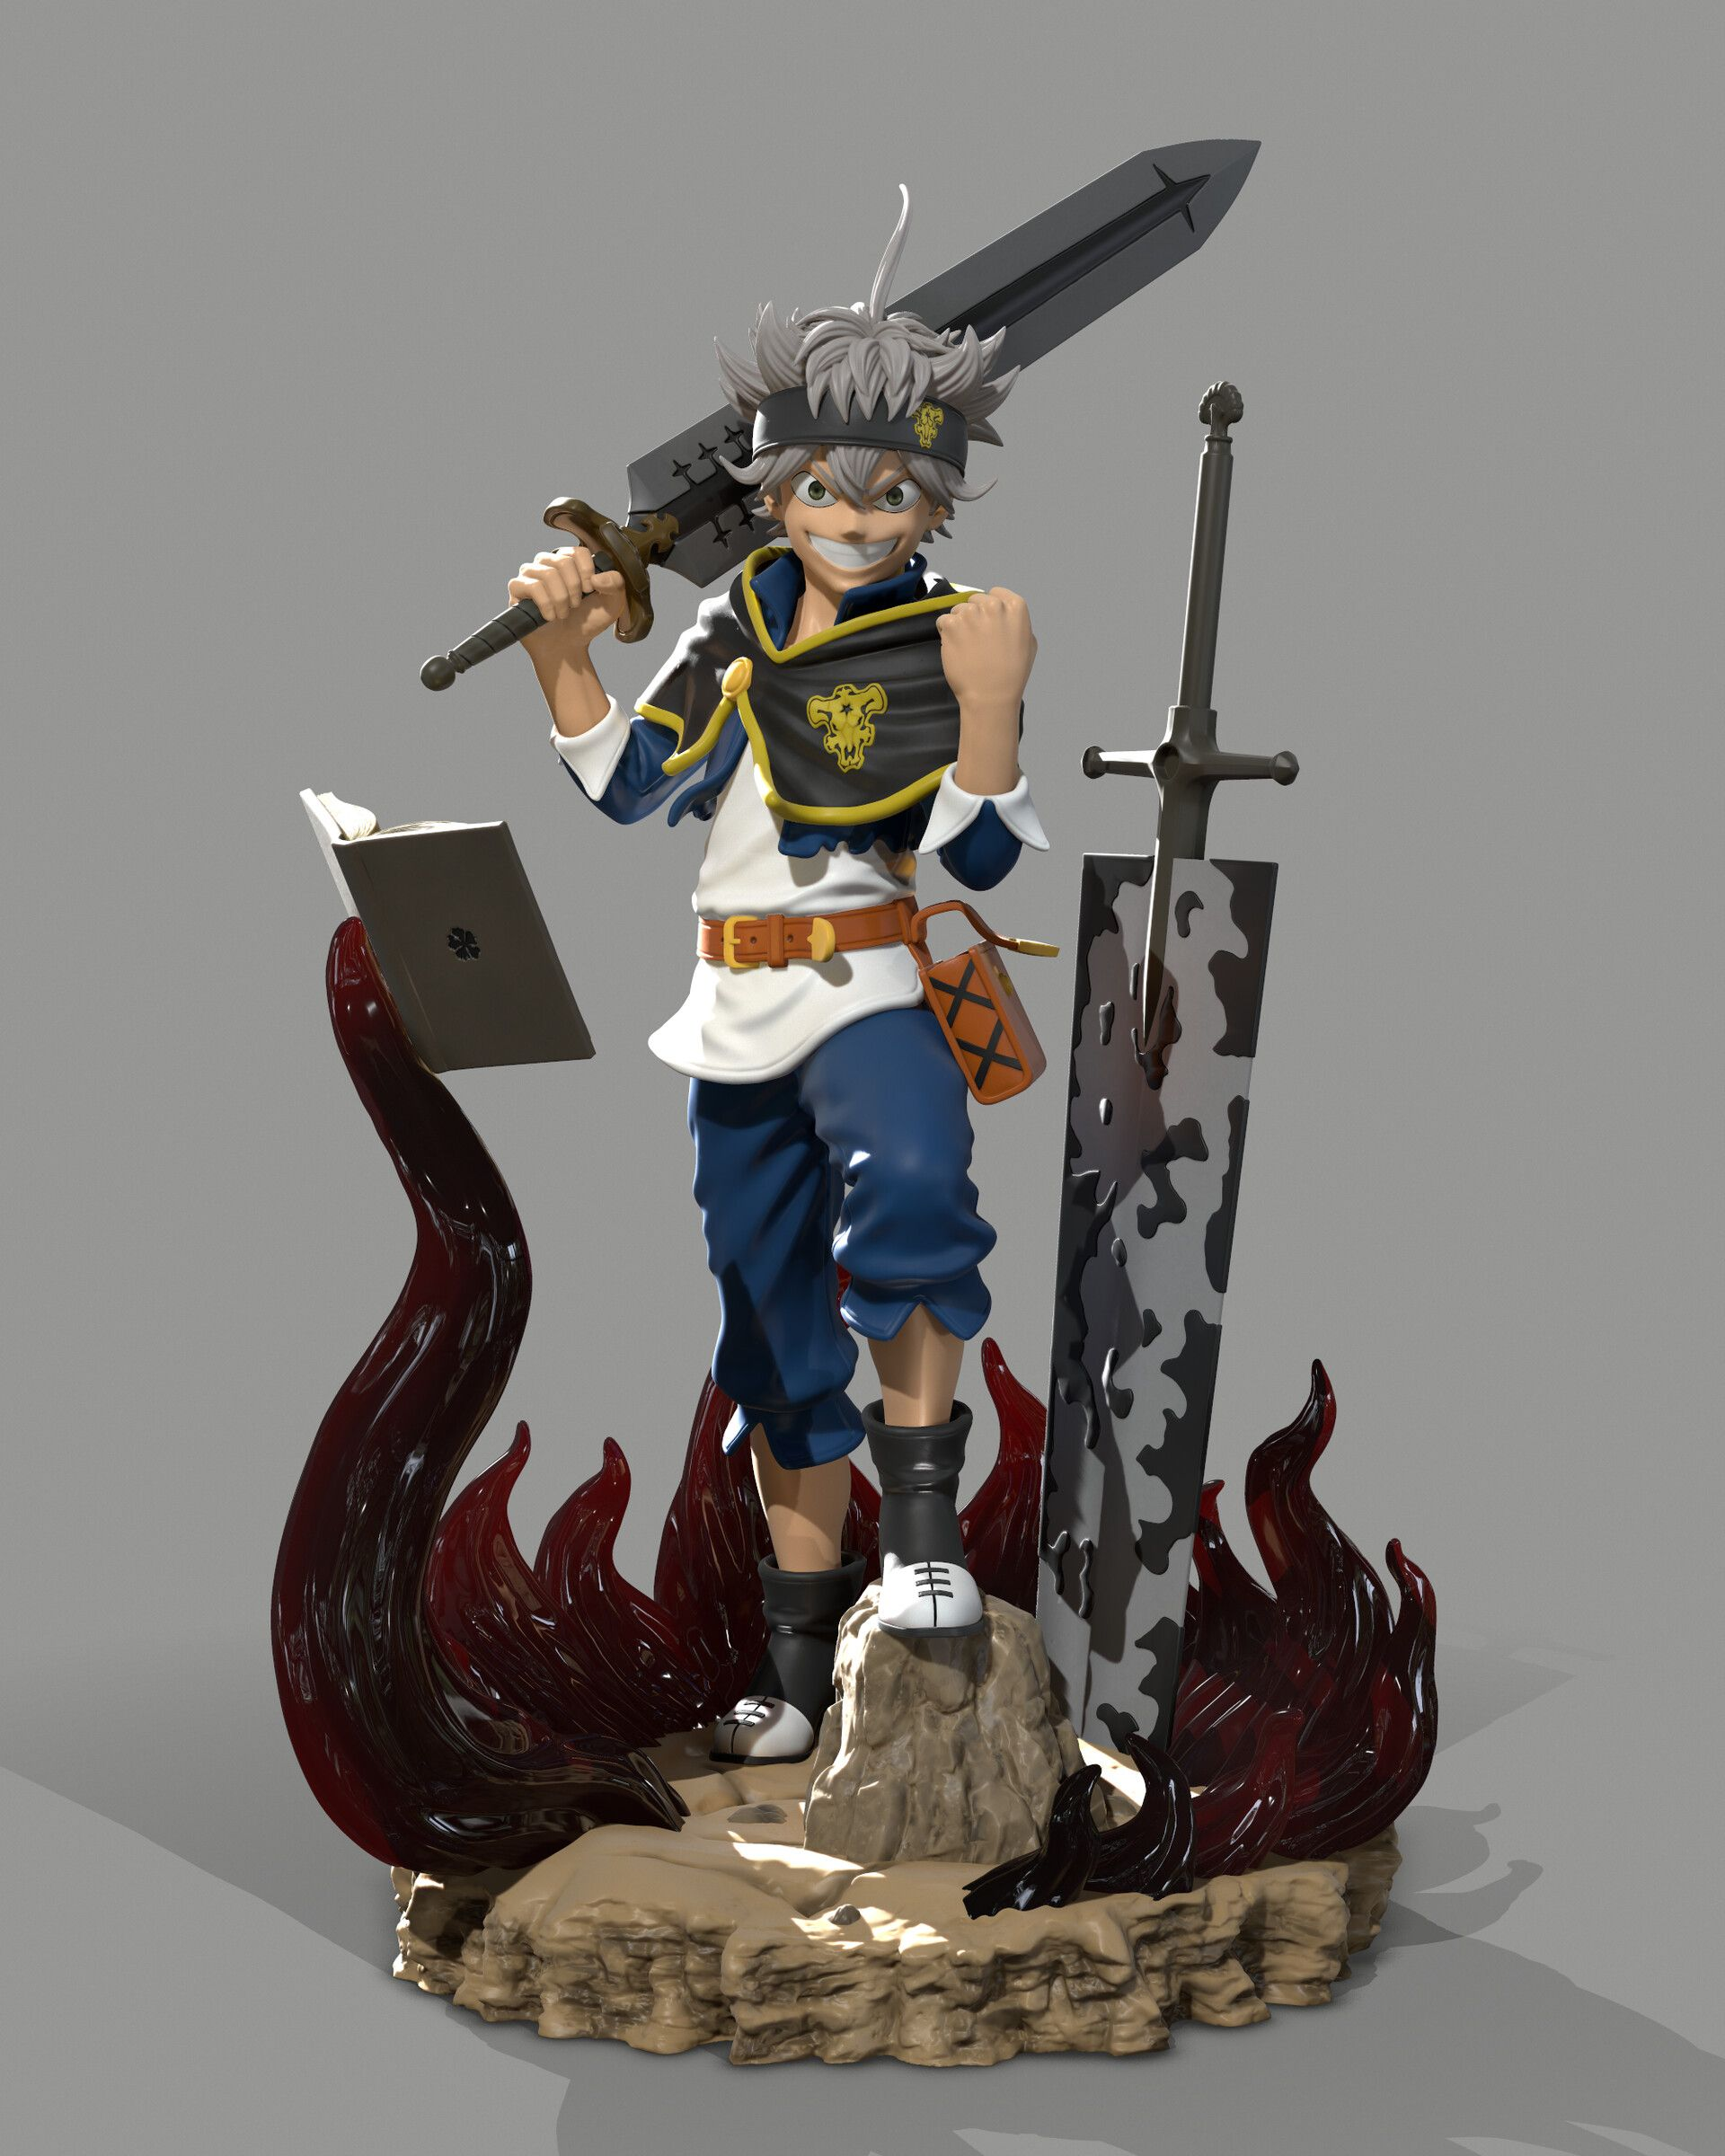 Artstation Asta Black Clover Statue Fan Art Victor Kallahan Black Clover Anime Anime Figures Nendoroid Anime Tons of awesome julius nova chrono phone wallpapers to download for free. artstation asta black clover statue